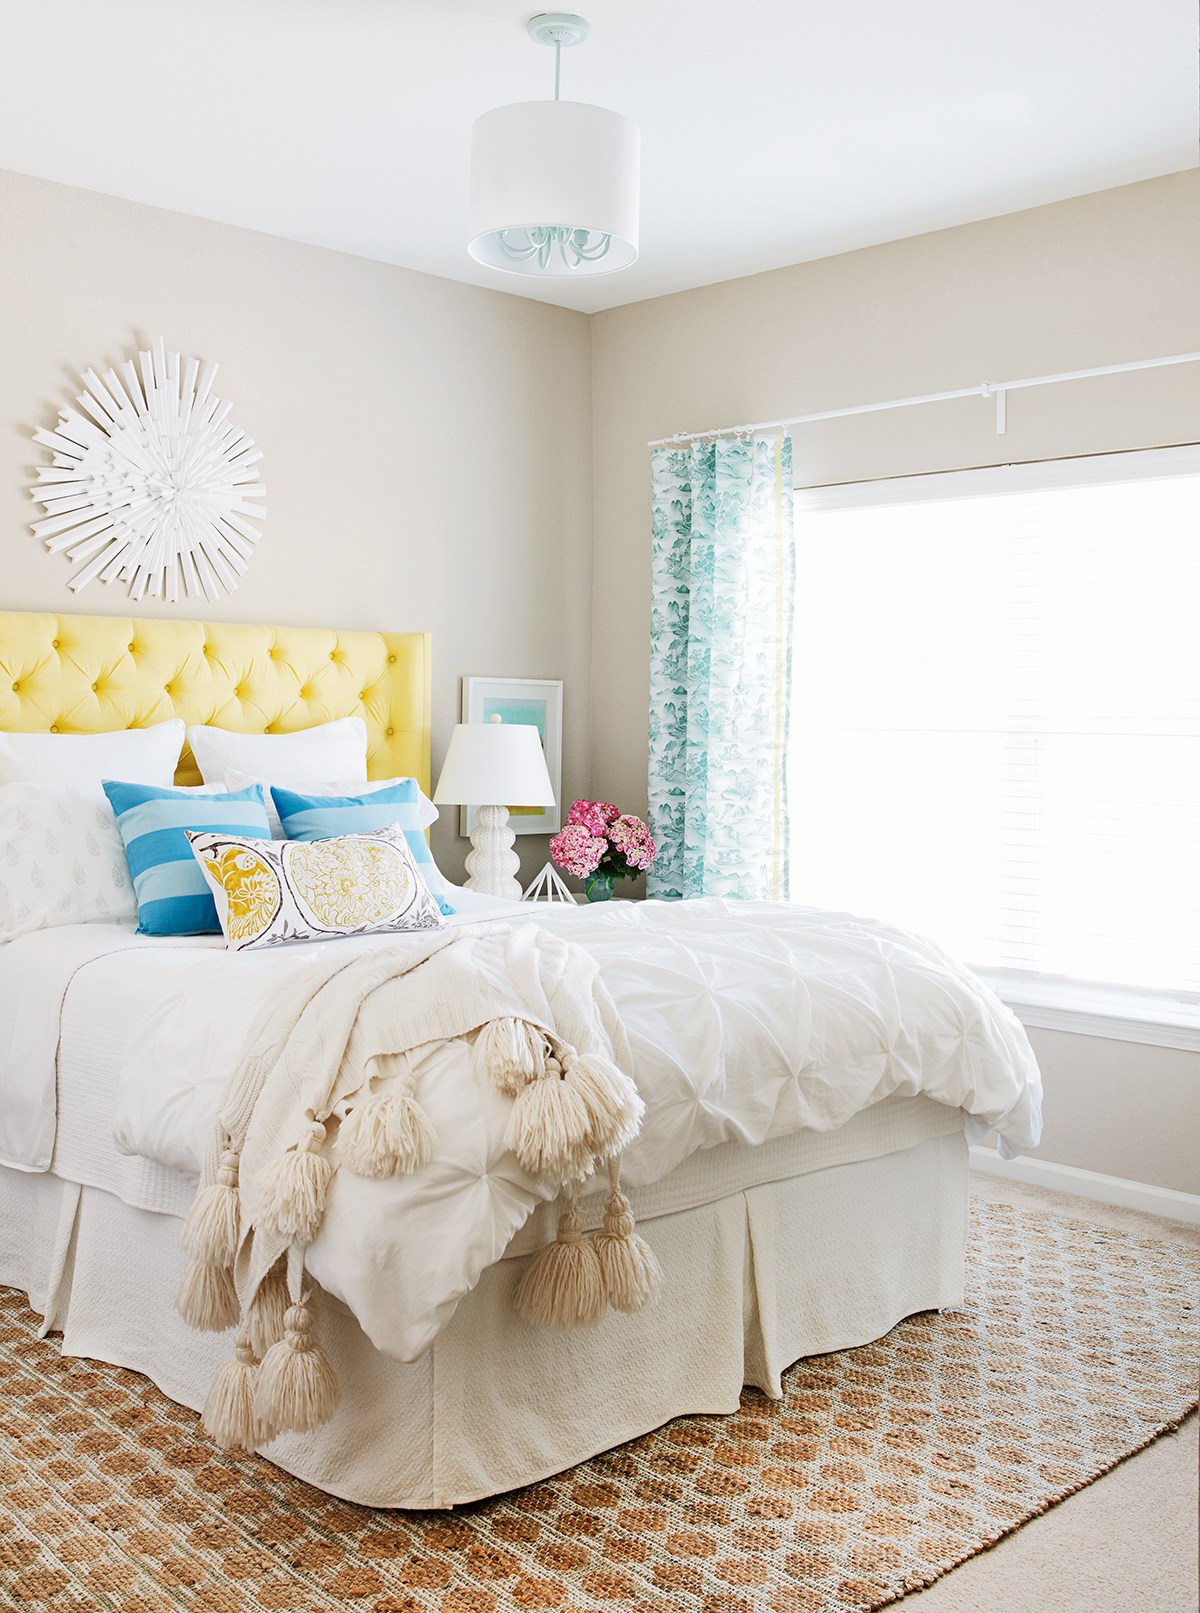 bedroom yellow upholstered headboard sunburst mirror